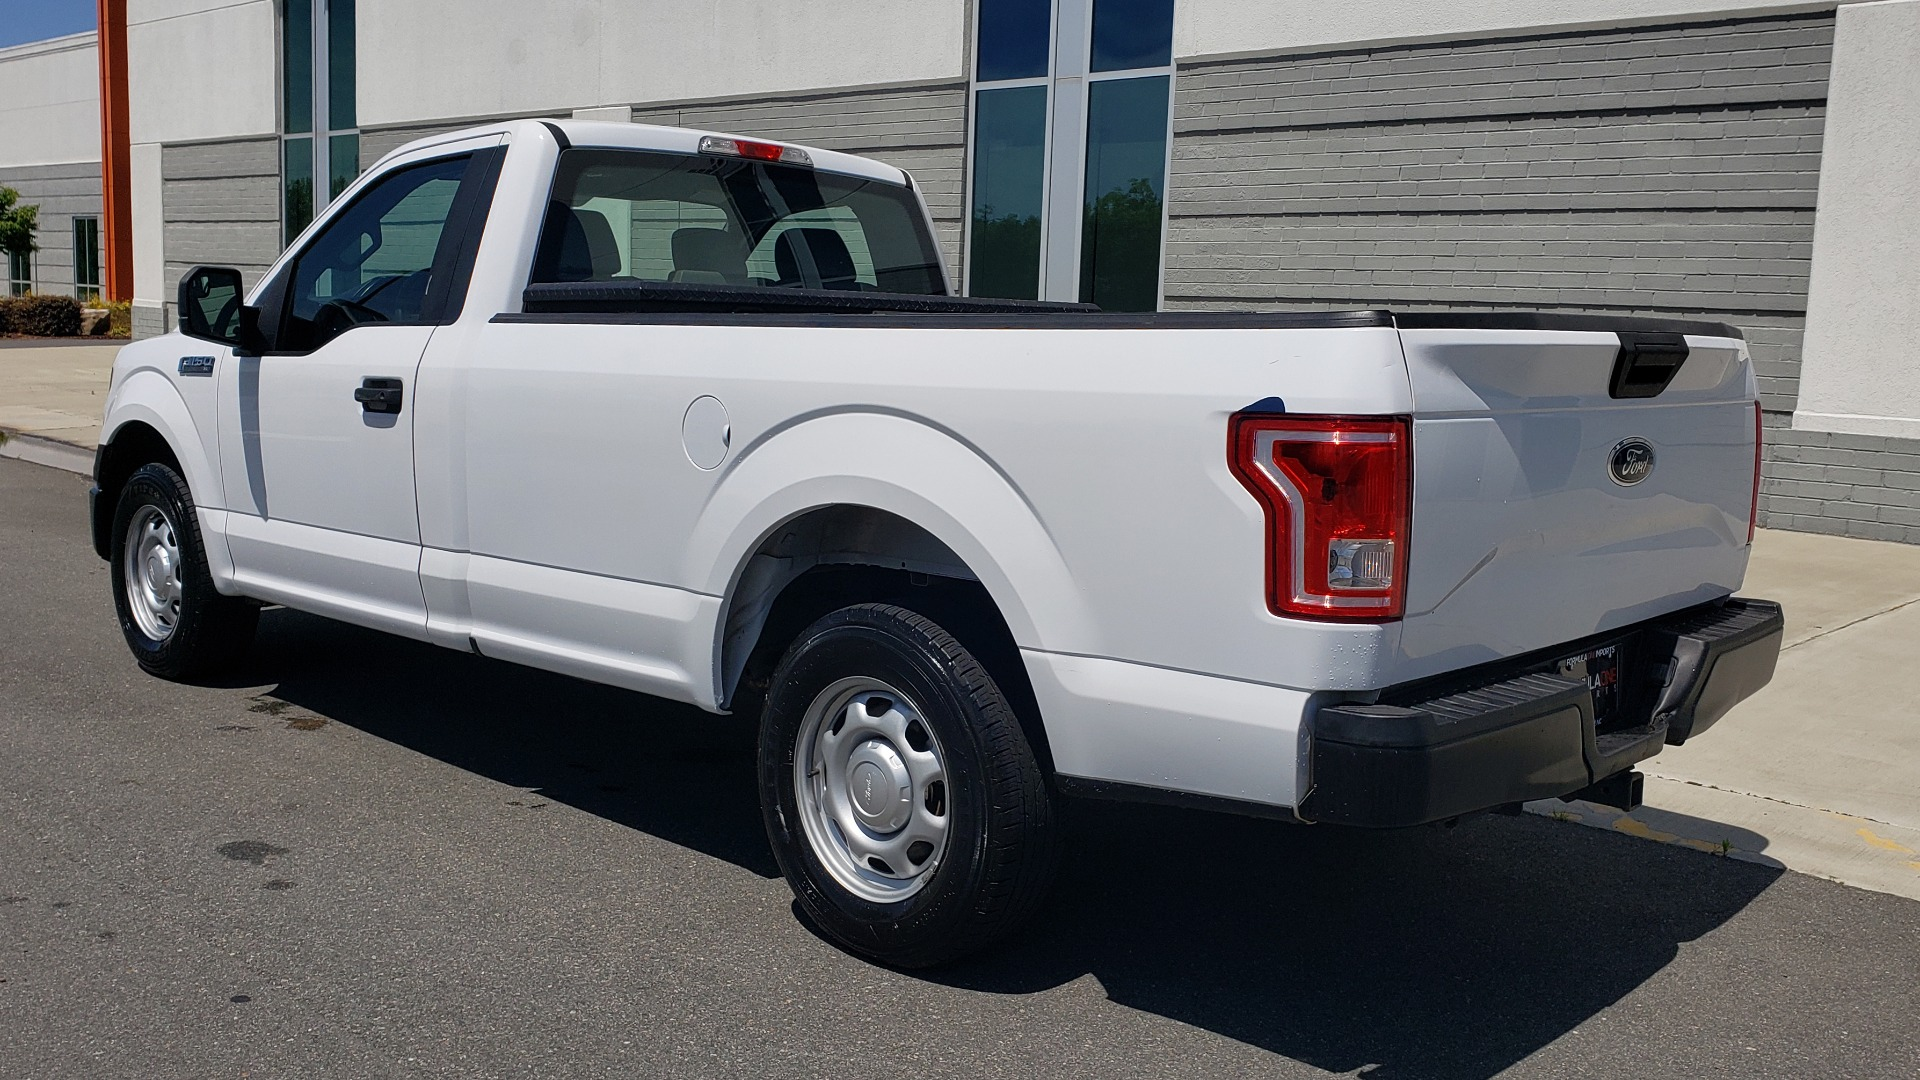 Used 2016 Ford F-150 XL 4X2 REGULAR CAB / 3.5L V6 / 6-SPD AUTO / CRUISE CONTROL for sale $12,995 at Formula Imports in Charlotte NC 28227 3